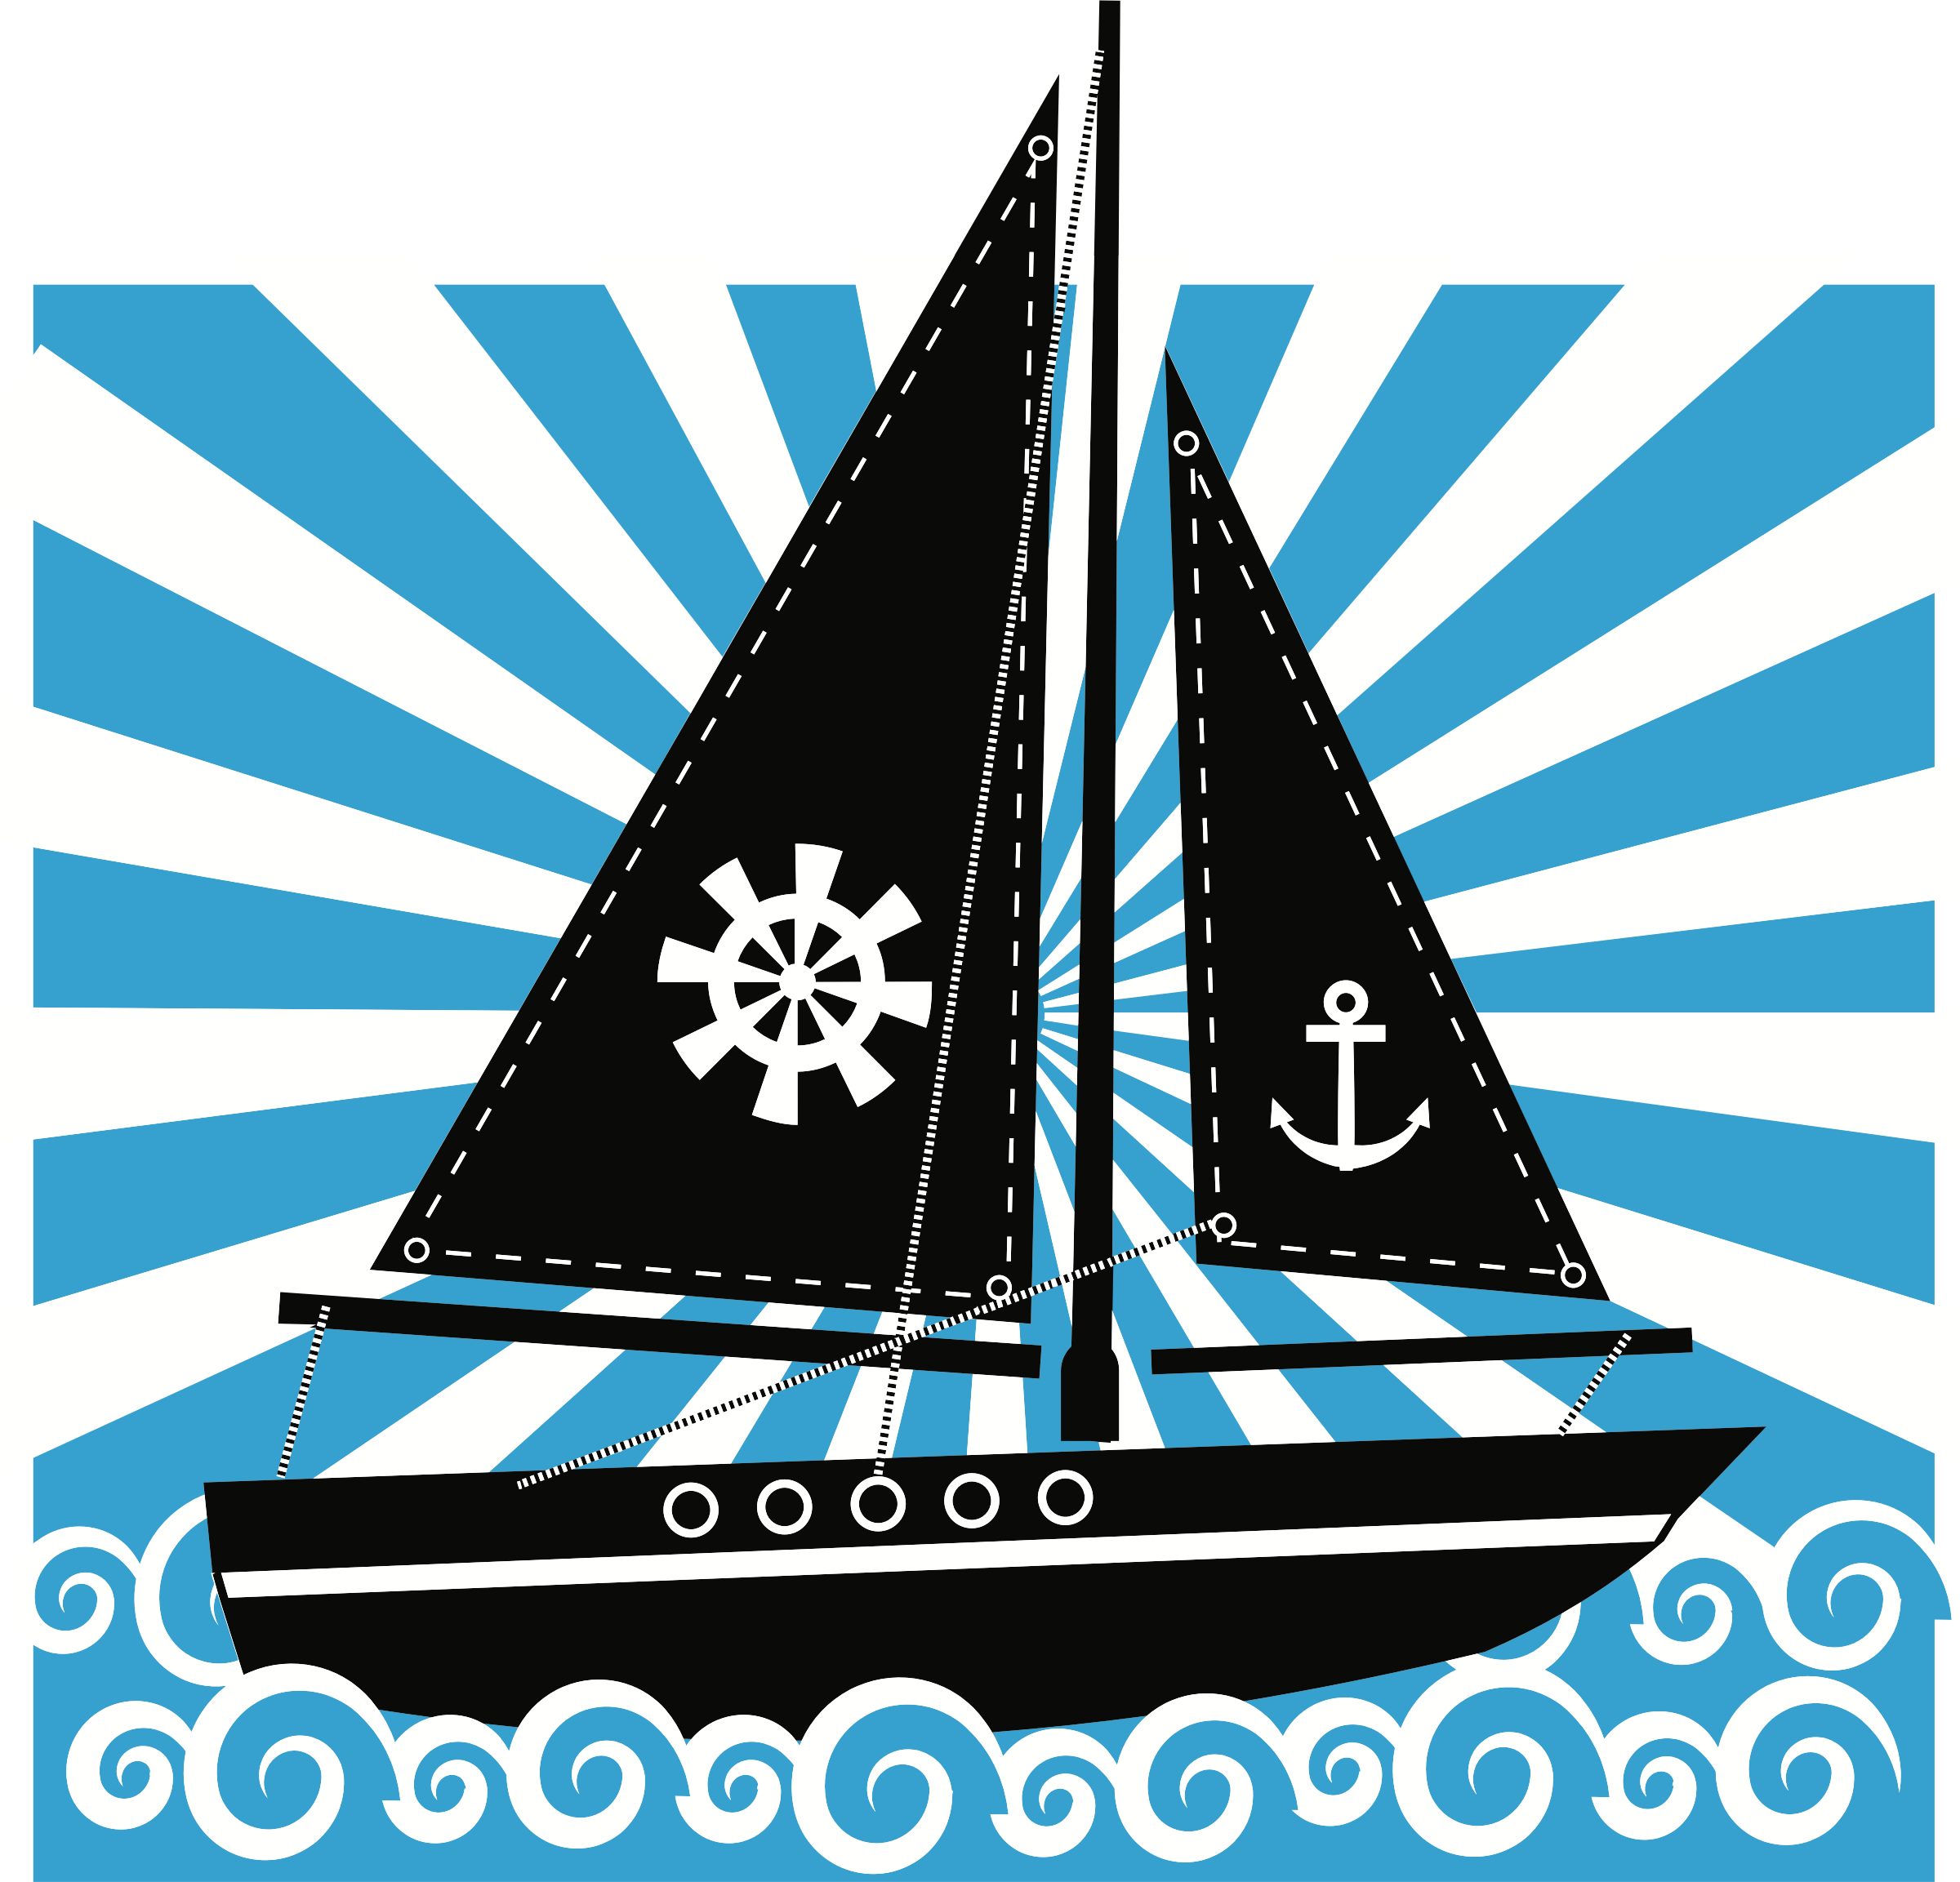 On sea big image. Clipart boat water transport